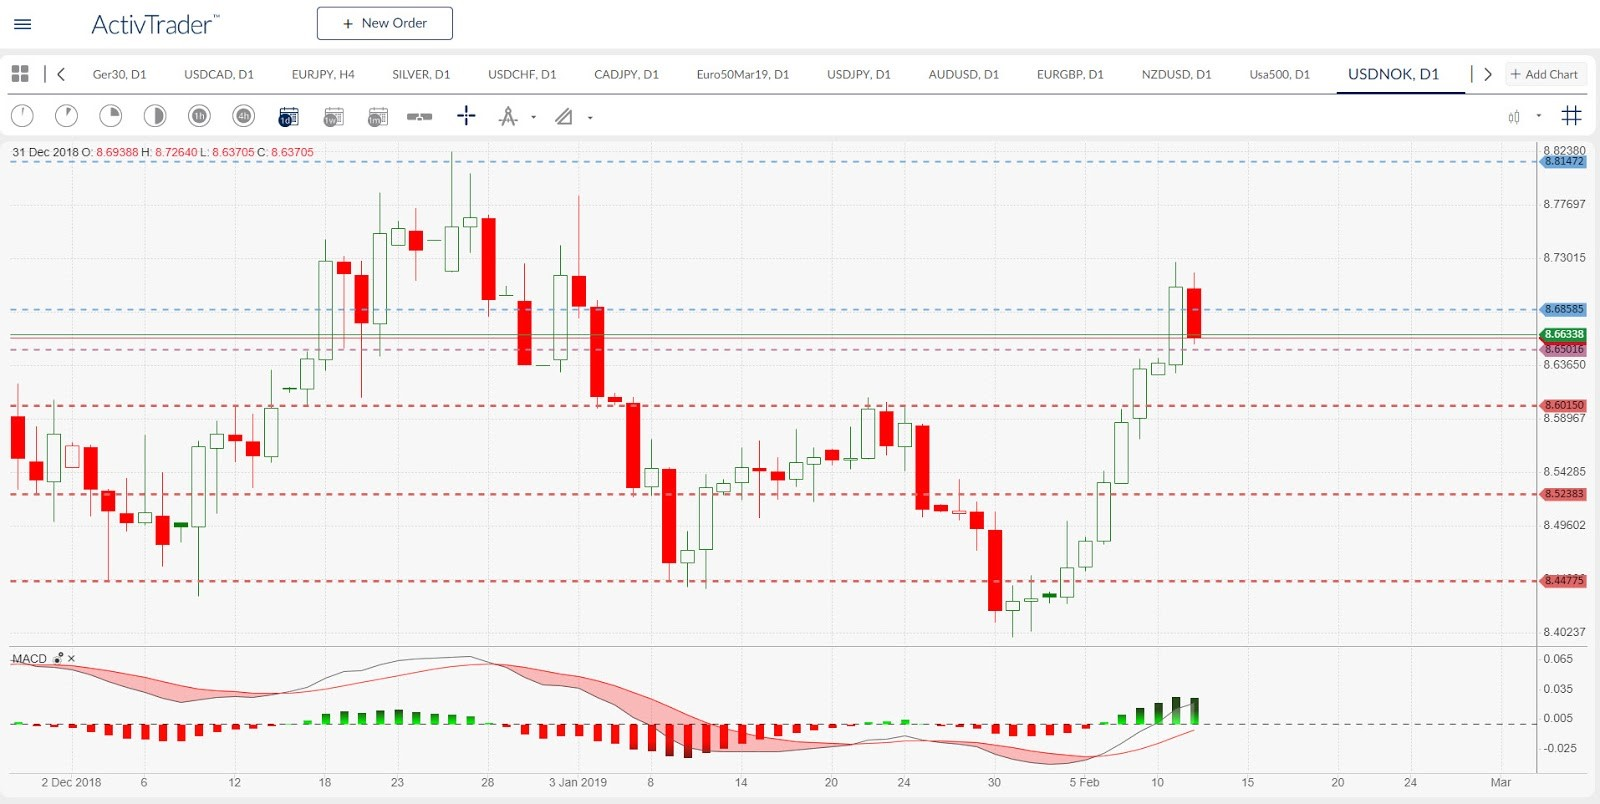 USD/NOK Daily Chart | Source: ActivTrader